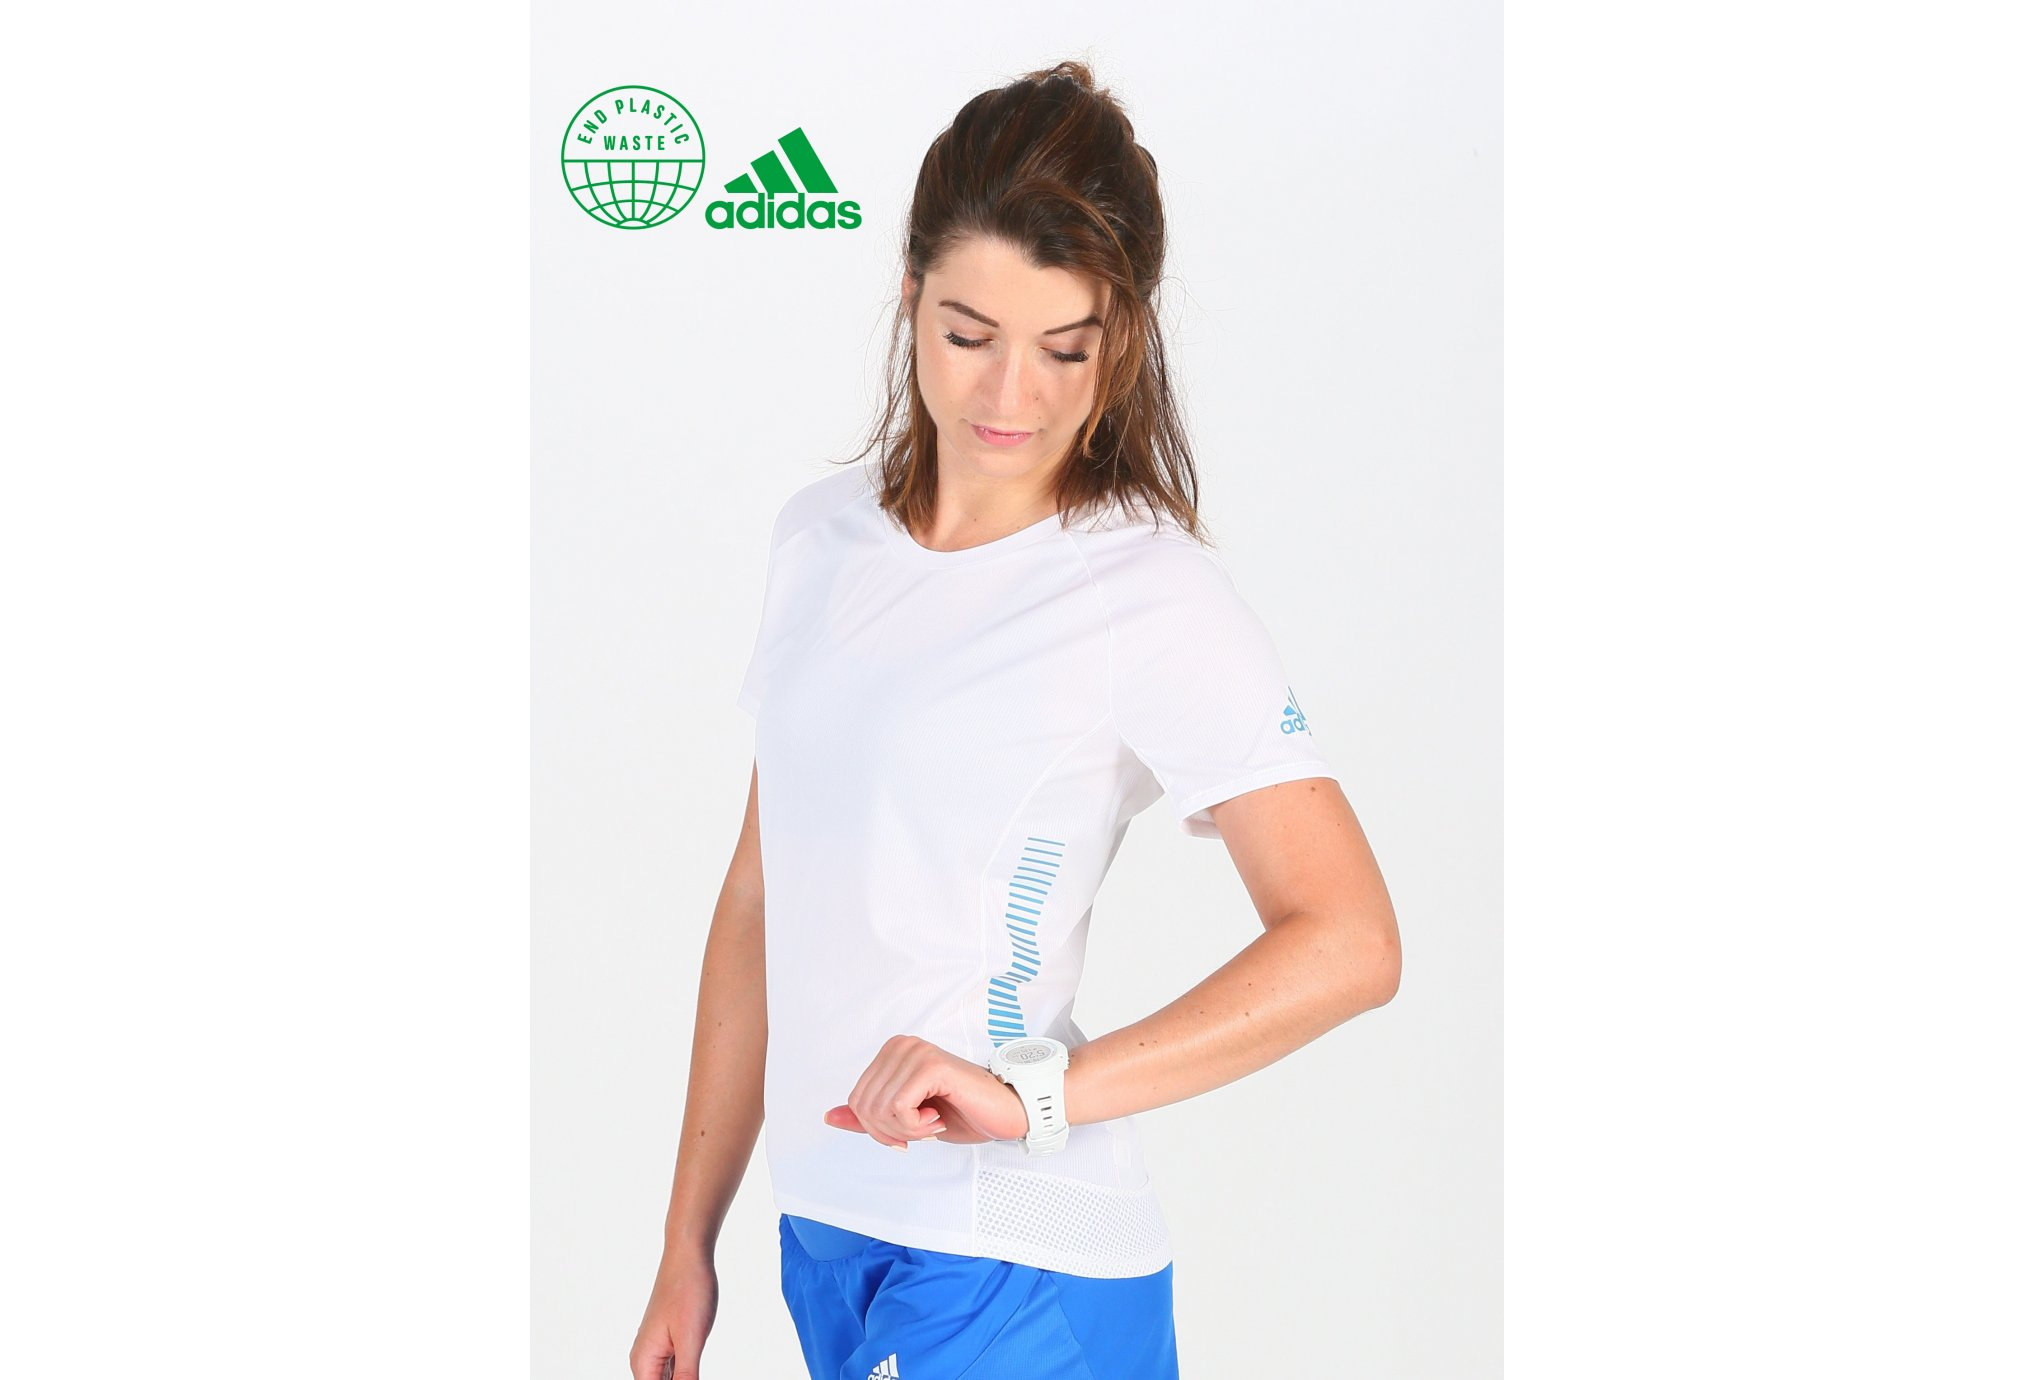 adidas 25/7 Rise Up N Run Parley W vêtement running femme